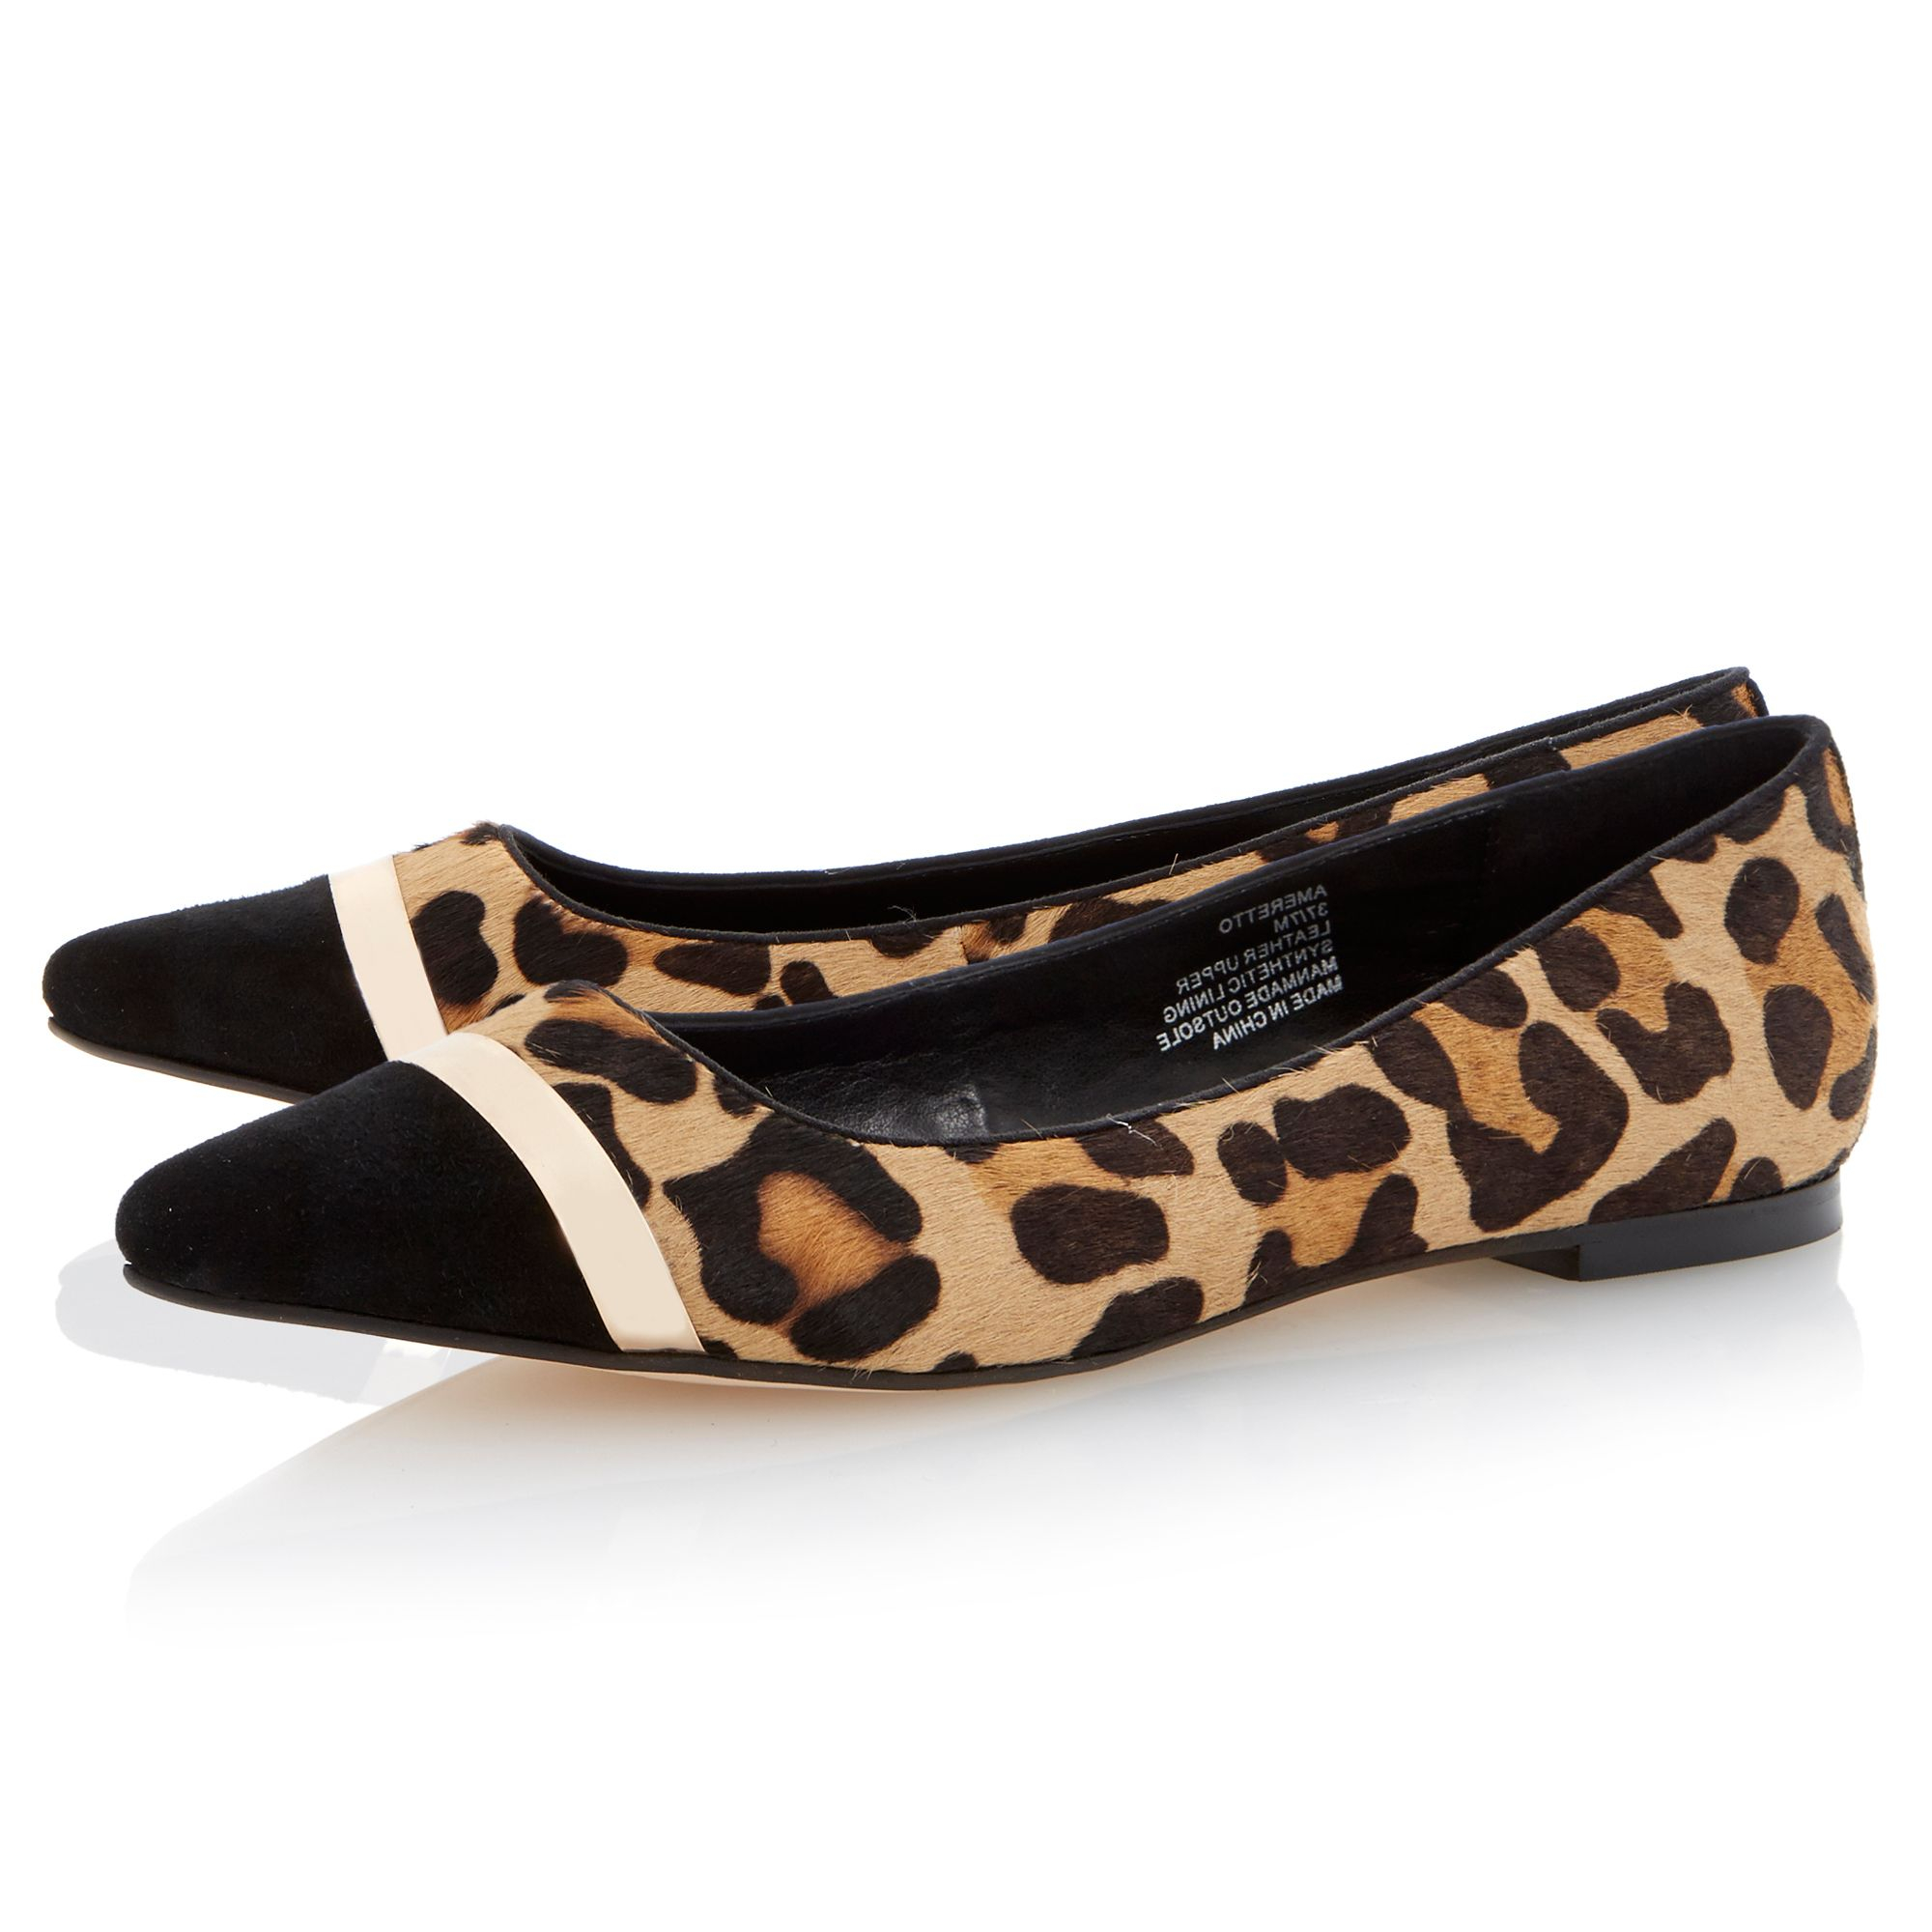 Dune Ameretto Pointed Toe Flat Shoes   Lyst